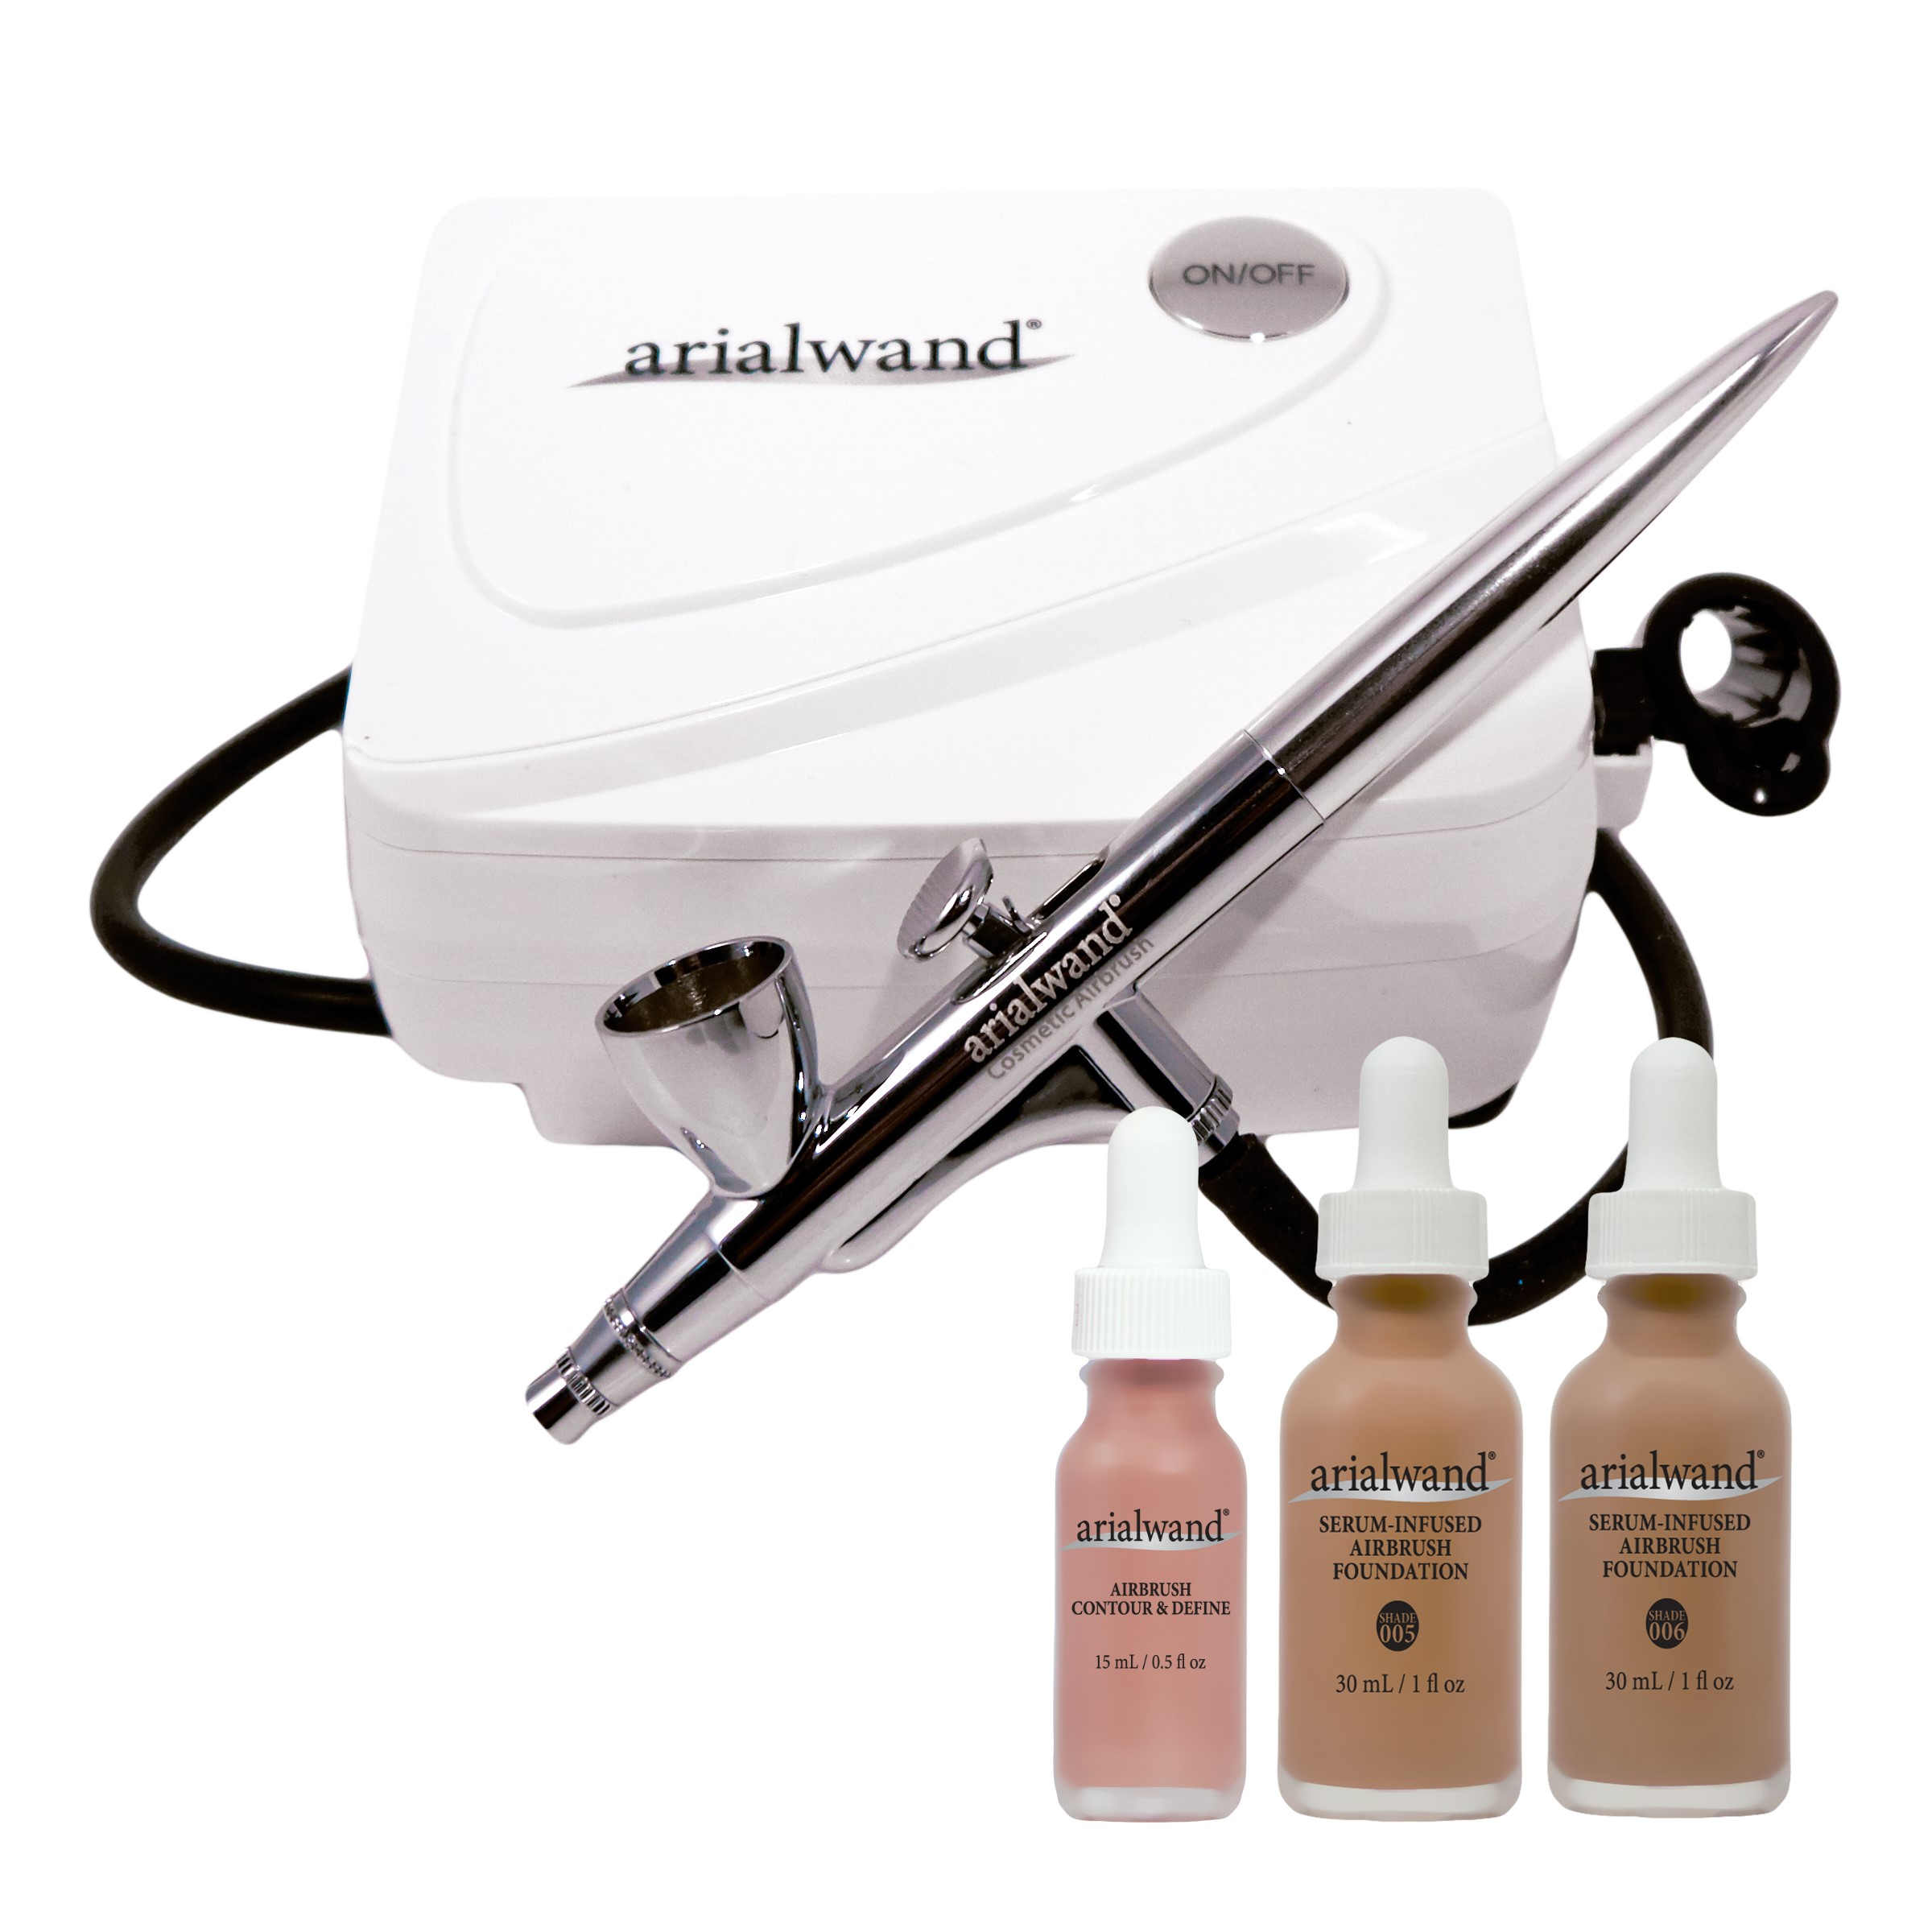 Arialwand Airbrush Kit with Serum Infused Foundation, Tan, 2 Ct